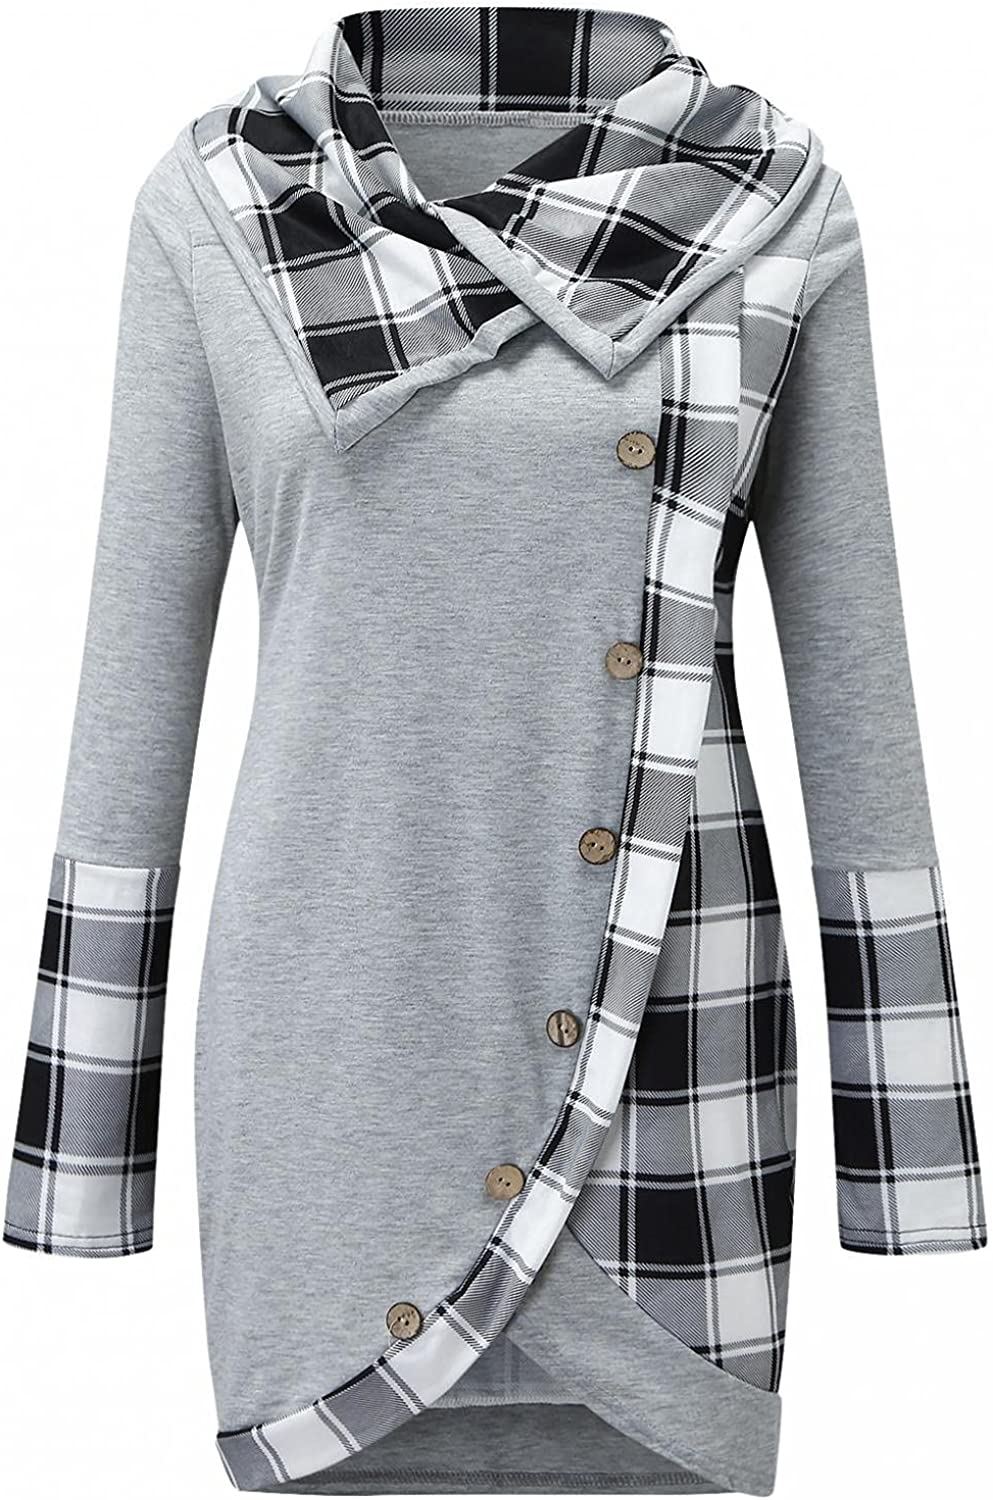 Long Sleeve Shirts for Women,Turn Down Collar Button Plaid Patchwork Sweatshirts Blouse Fashion Jumper Pullovers